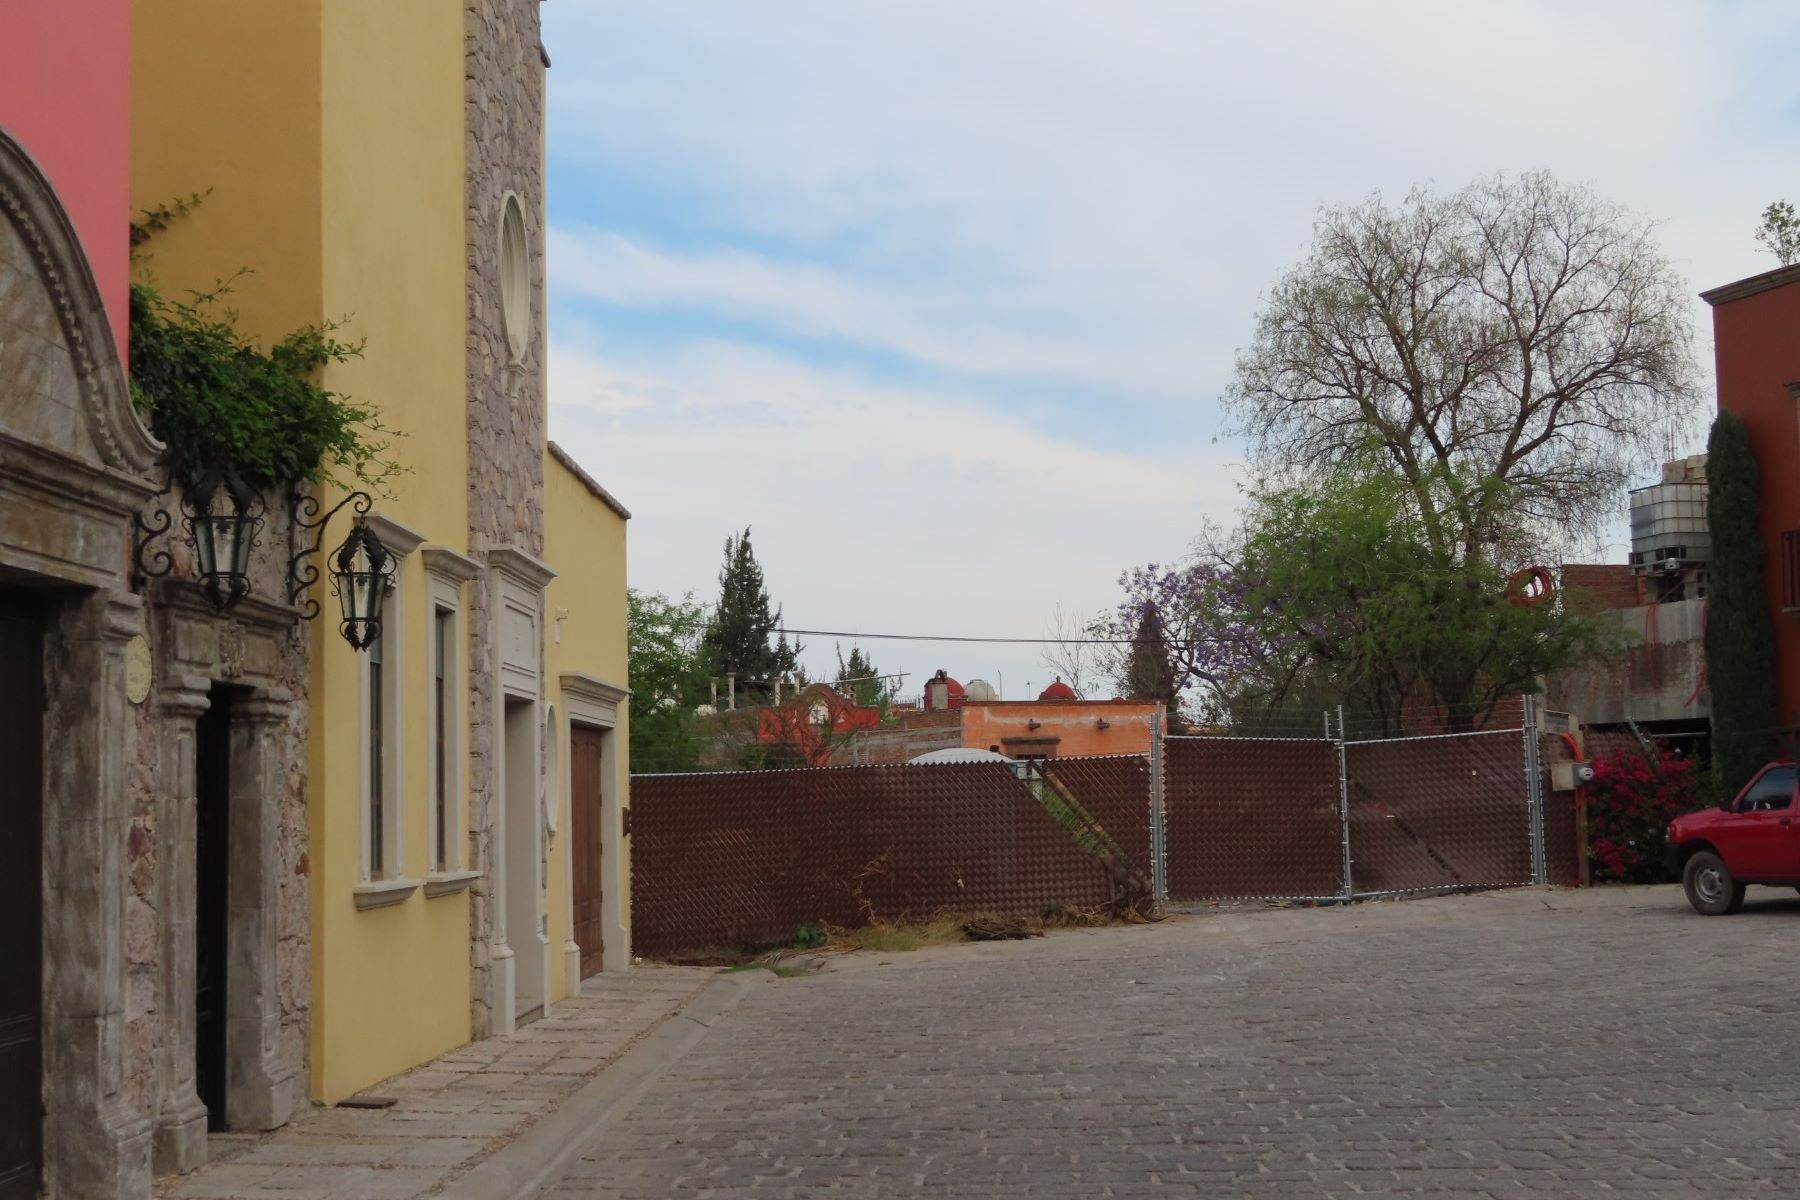 Property for Sale at Quiote Lote 6 Cerrada de Grillo - Lot 6 San Miguel De Allende, Guanajuato 37710 Mexico